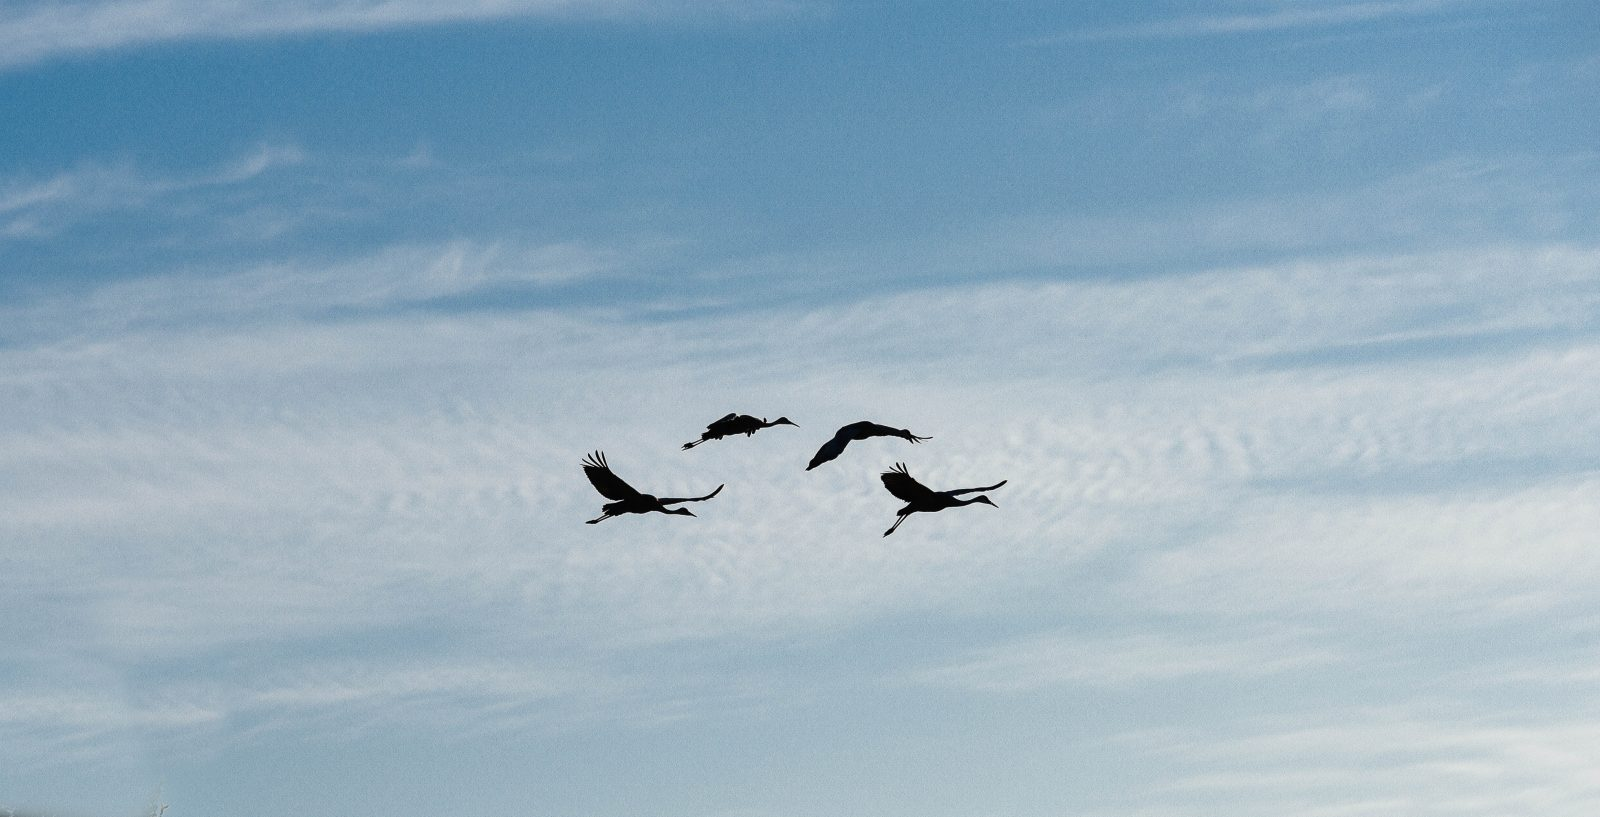 Flight of the Sandhill Cranes